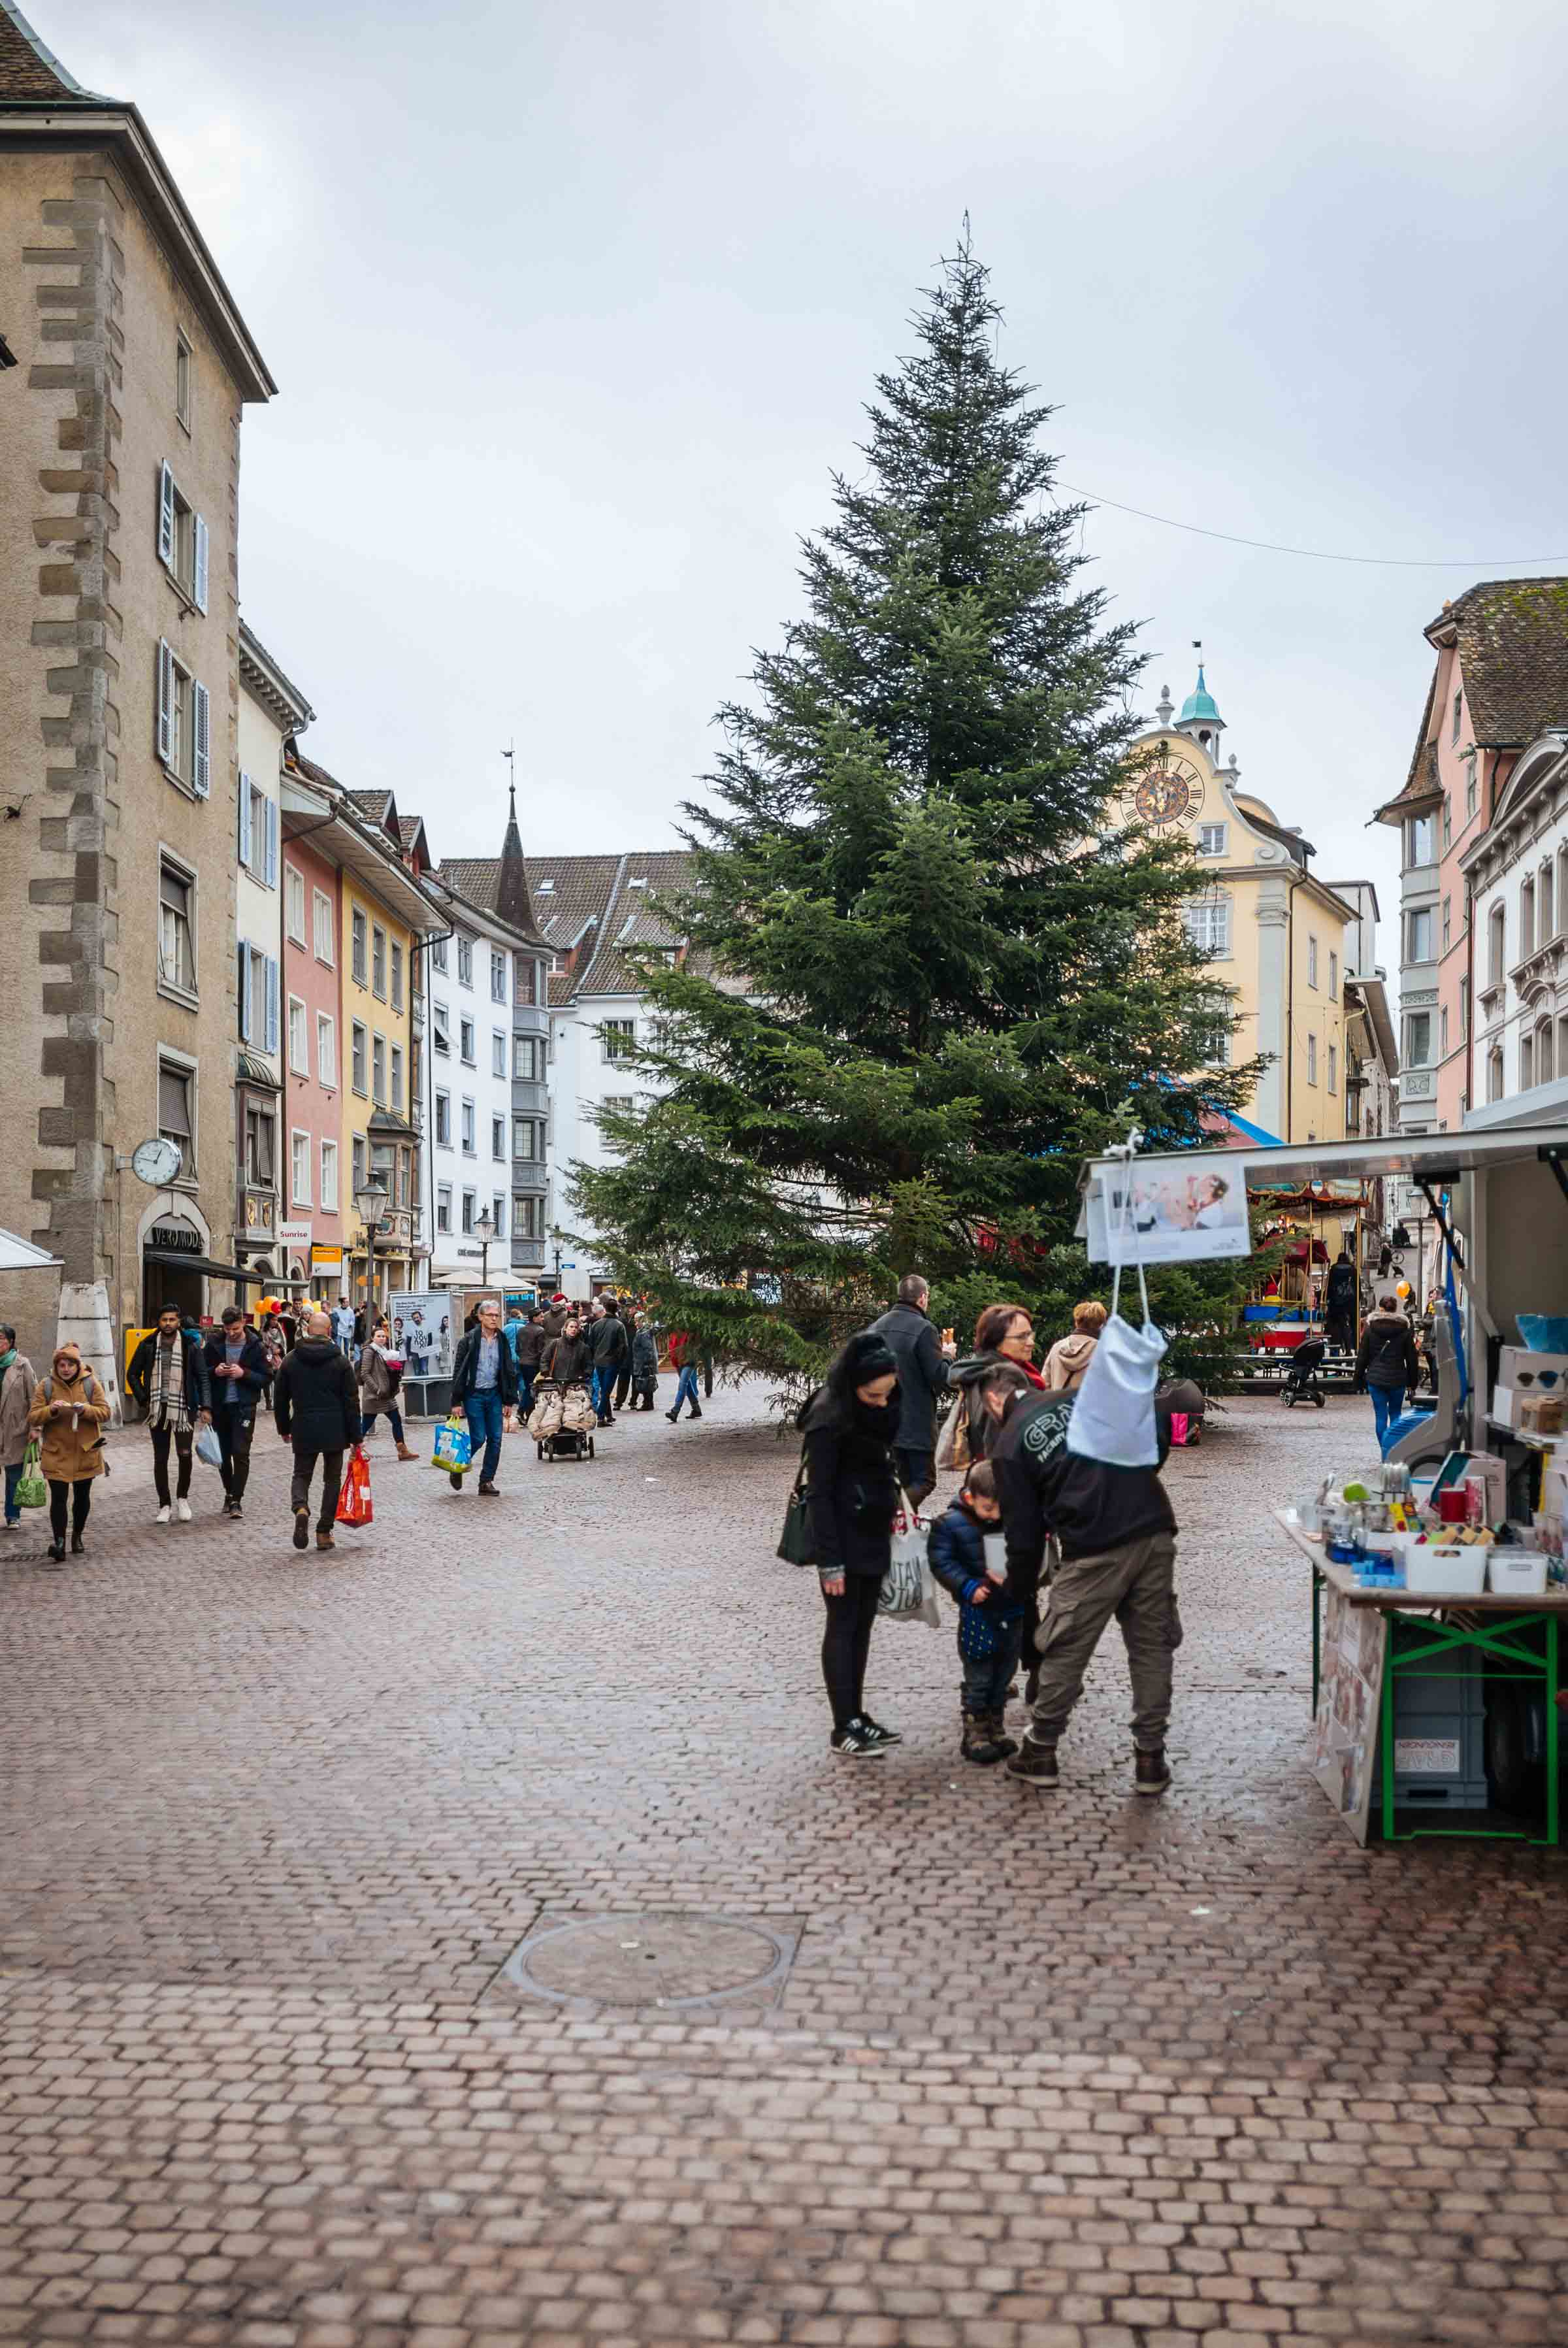 Visit Schaffhausen Switzerland Christmas market in the main square with a giant Christmas Tree